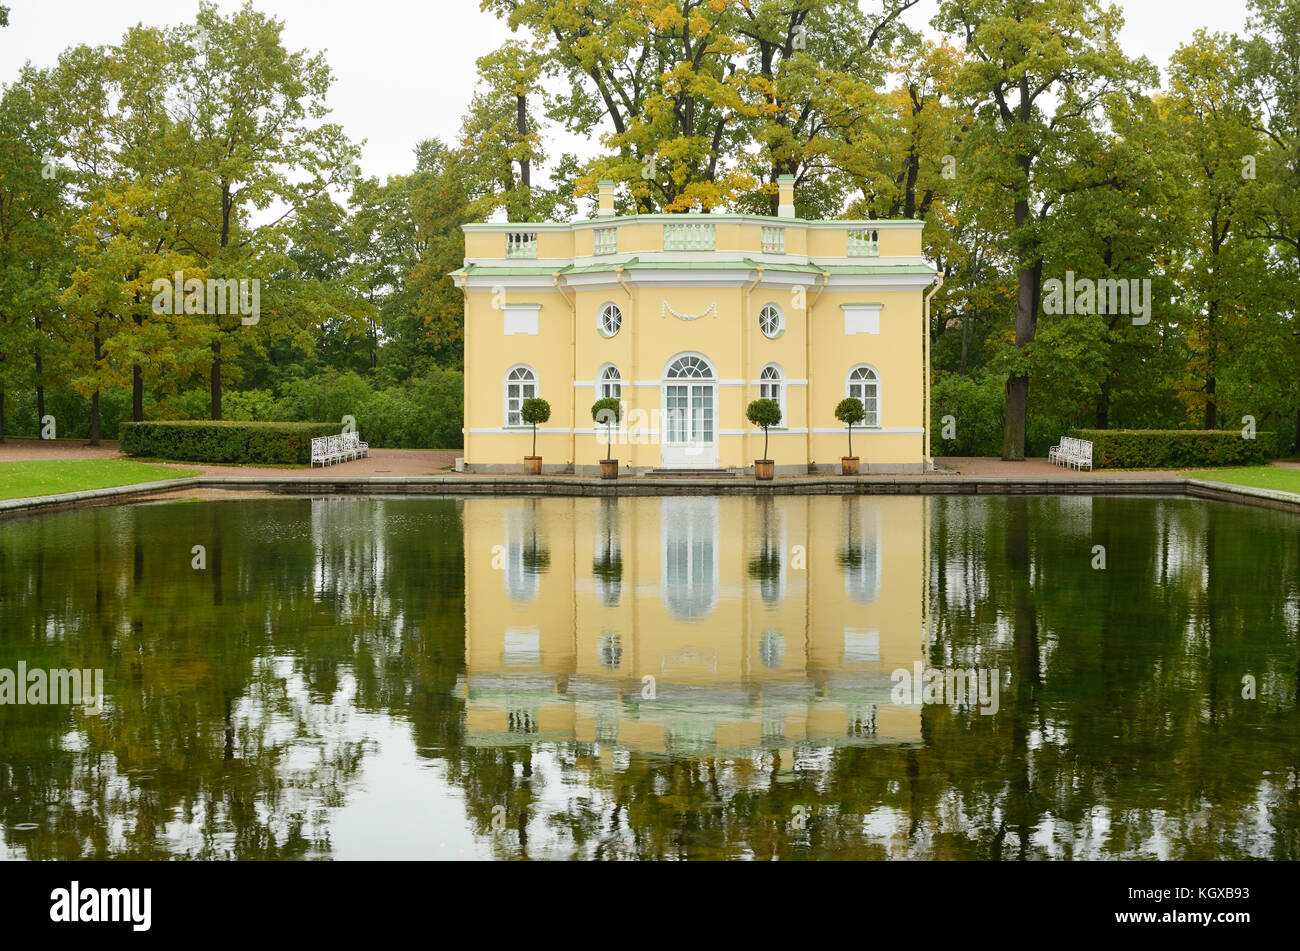 24.09.2016.Russia.Pushkin.Catherine Park.The picture shows a bath designed for the aristocrats. - Stock Image